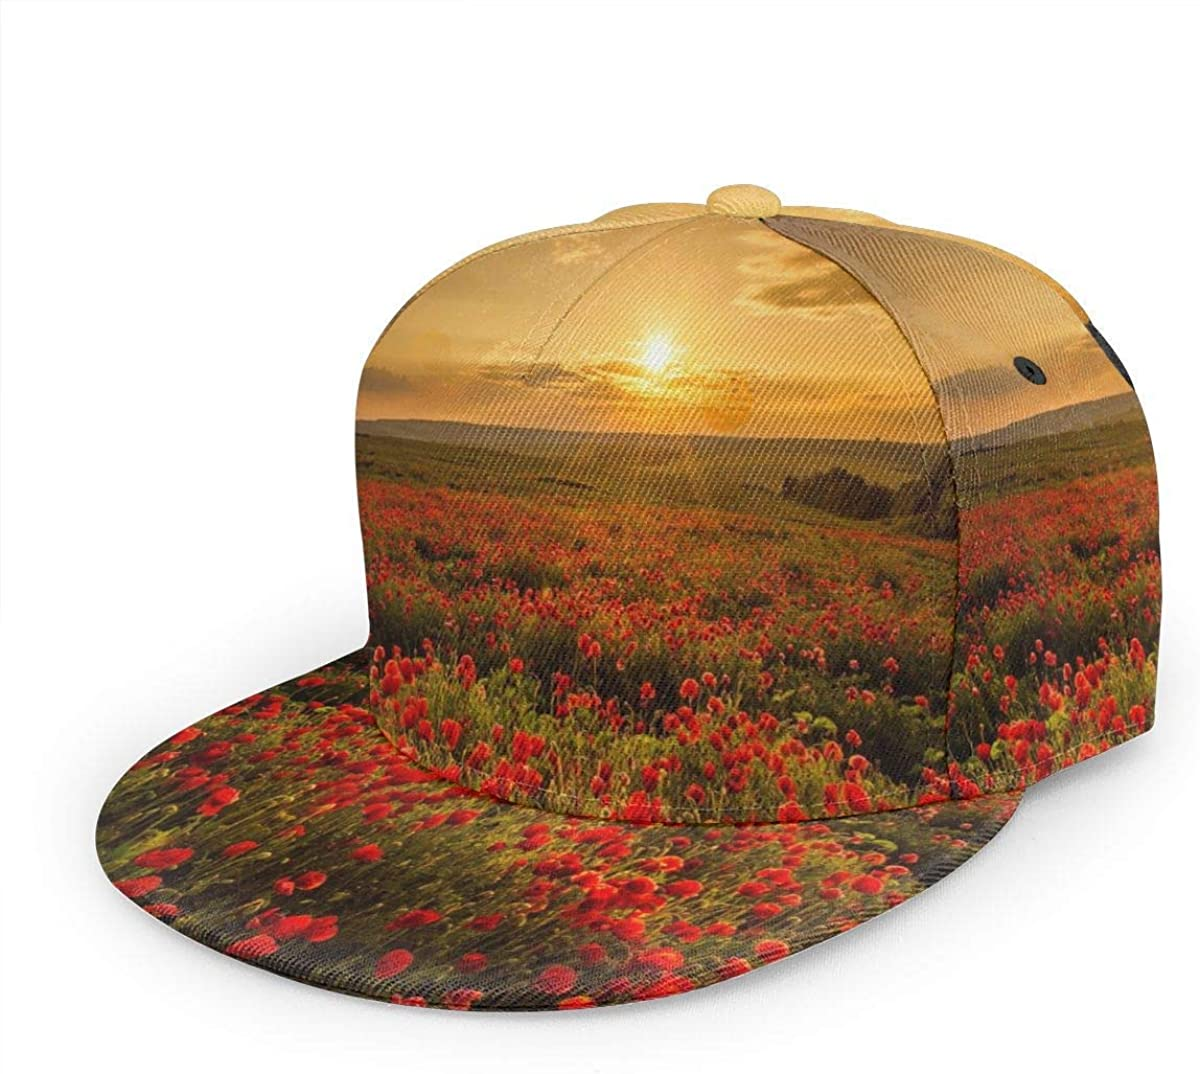 Poppy Field Sunset Red Lightweight Unisex Baseball Caps Adjustable Breathable Sun Hat for Sport Outdoor